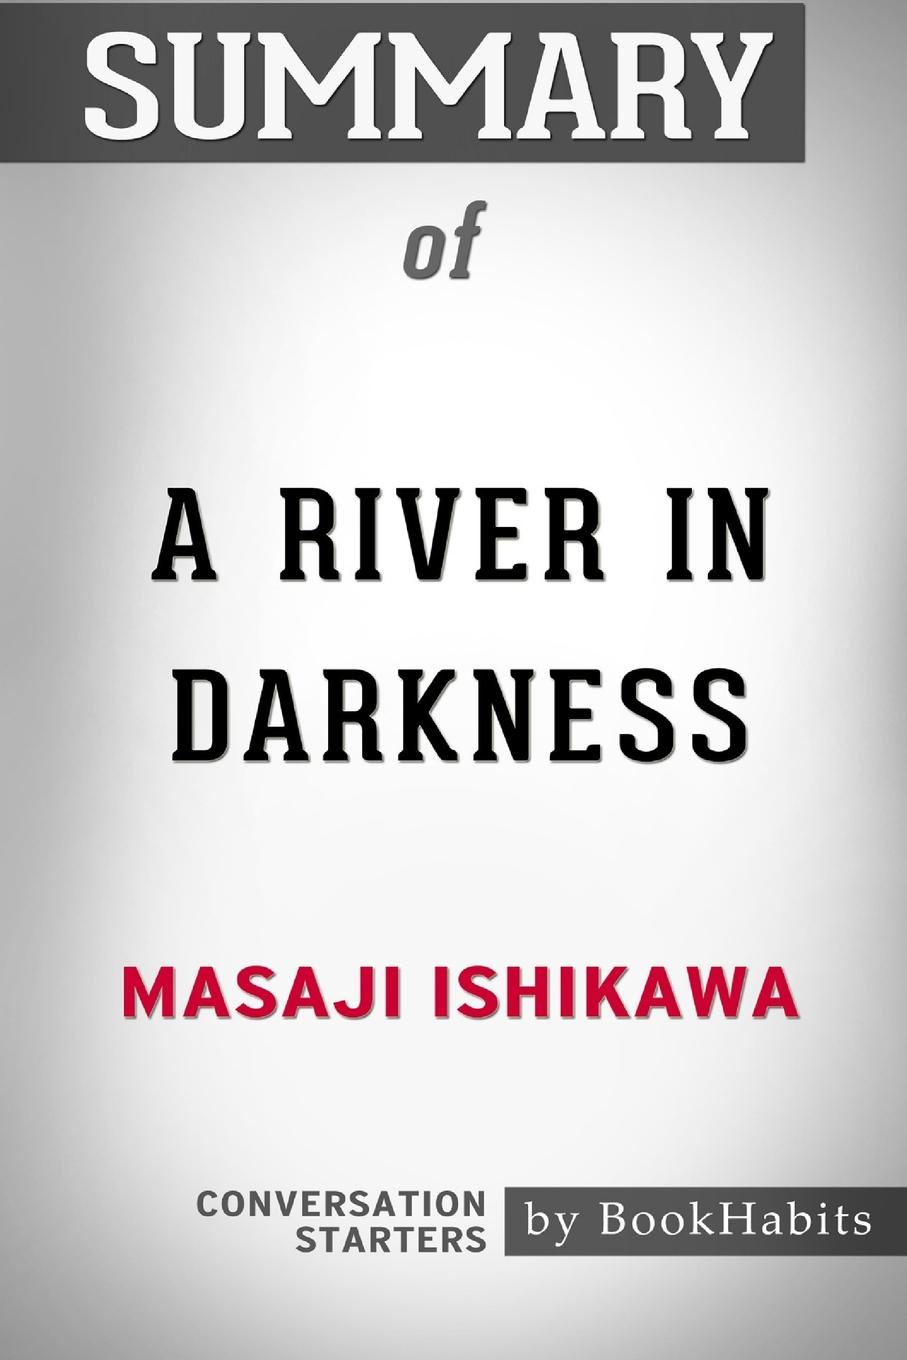 BookHabits Summary of A River in Darkness by Masaji Ishikawa. Conversation Starters